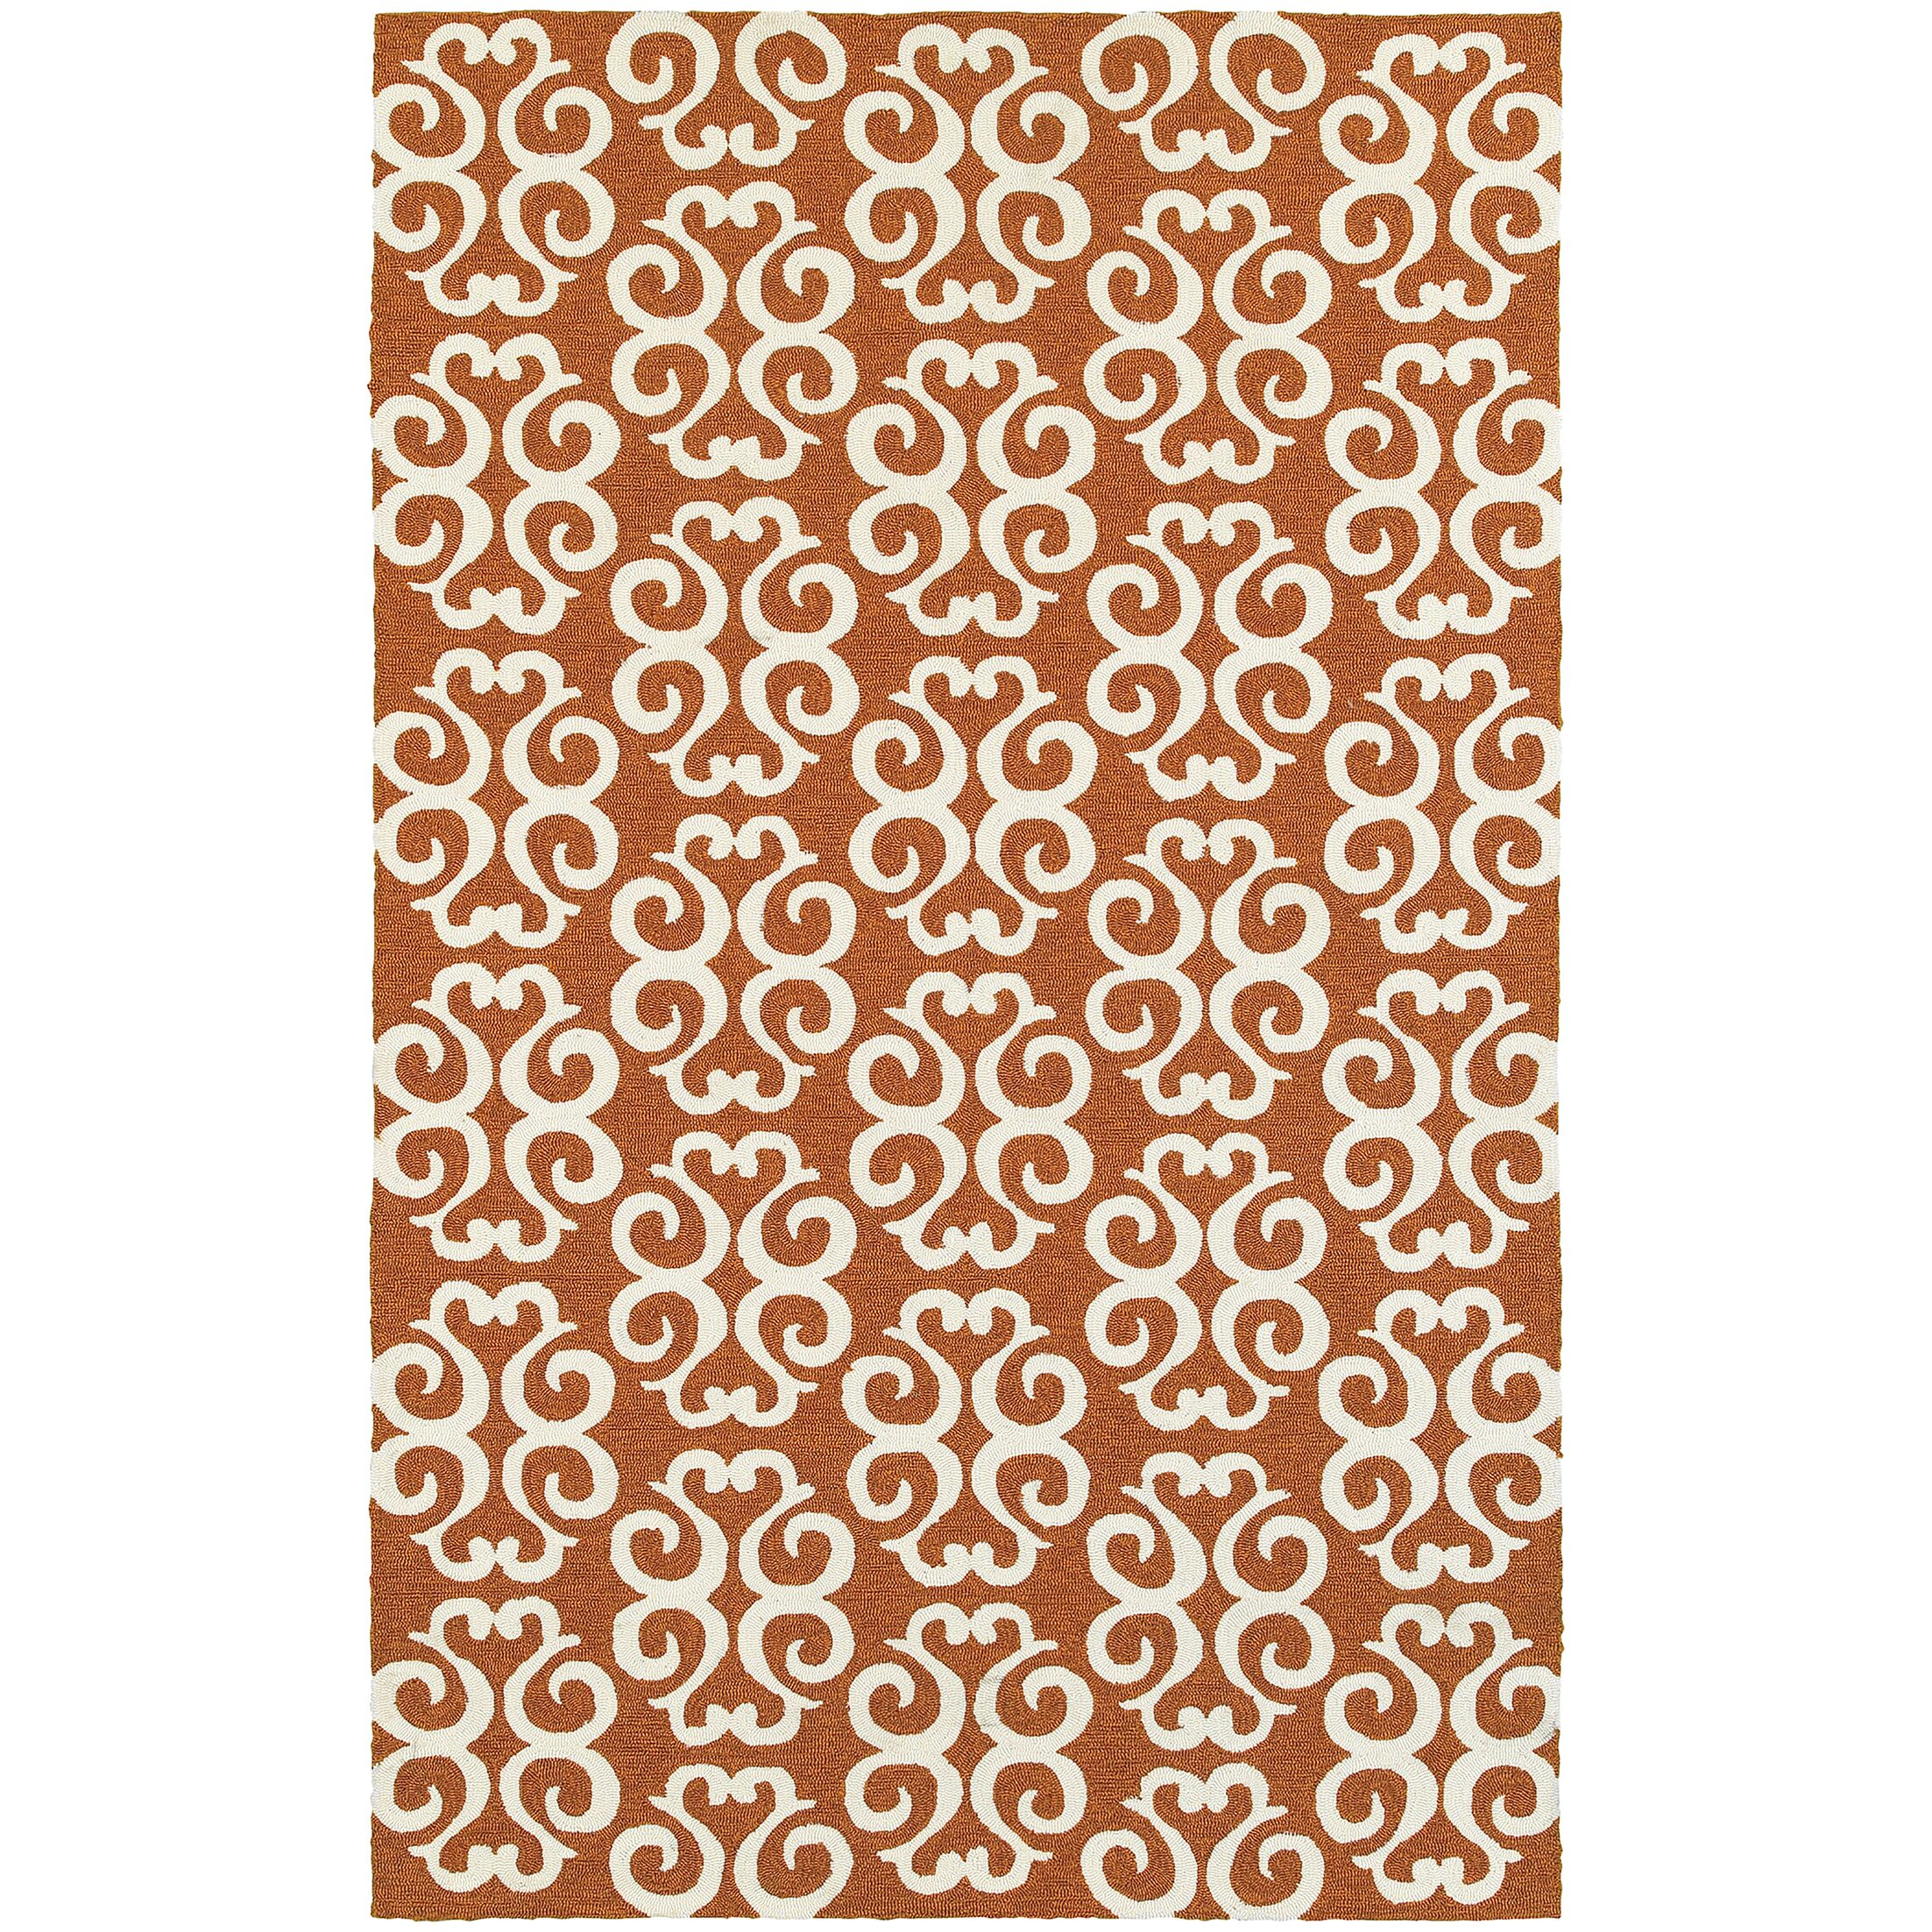 Atrium Scroll Work Brown/Ivory Indoor/Outdoor Area Rug Rug Size: Rectangle 3'6